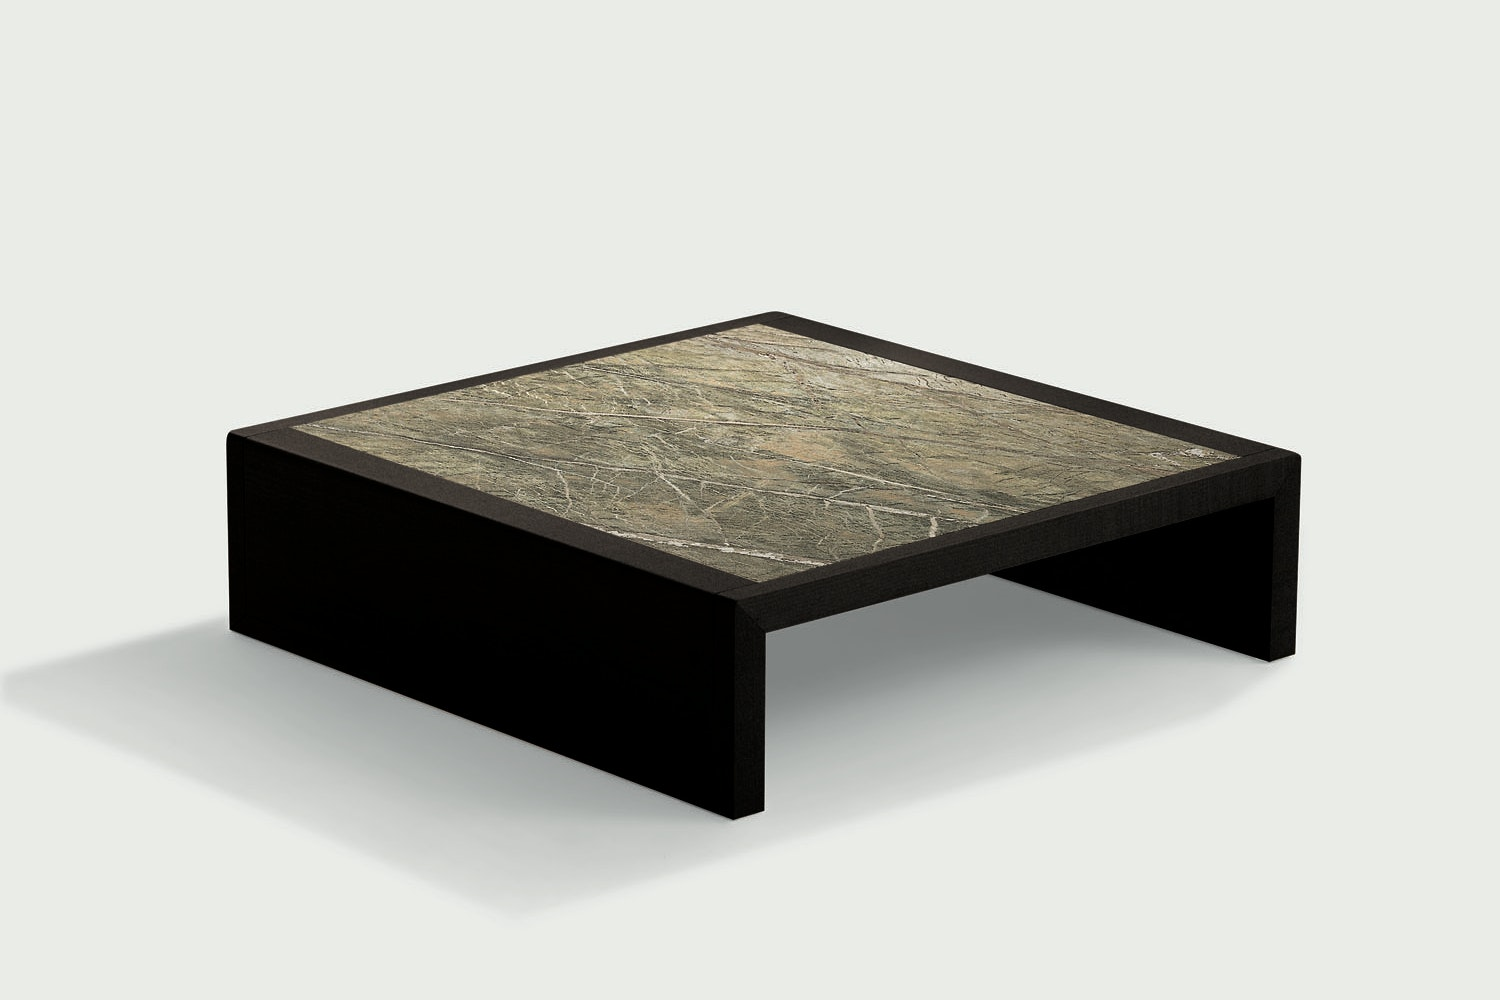 Kyr Coffee Table by Chi Wing Lo for Giorgetti